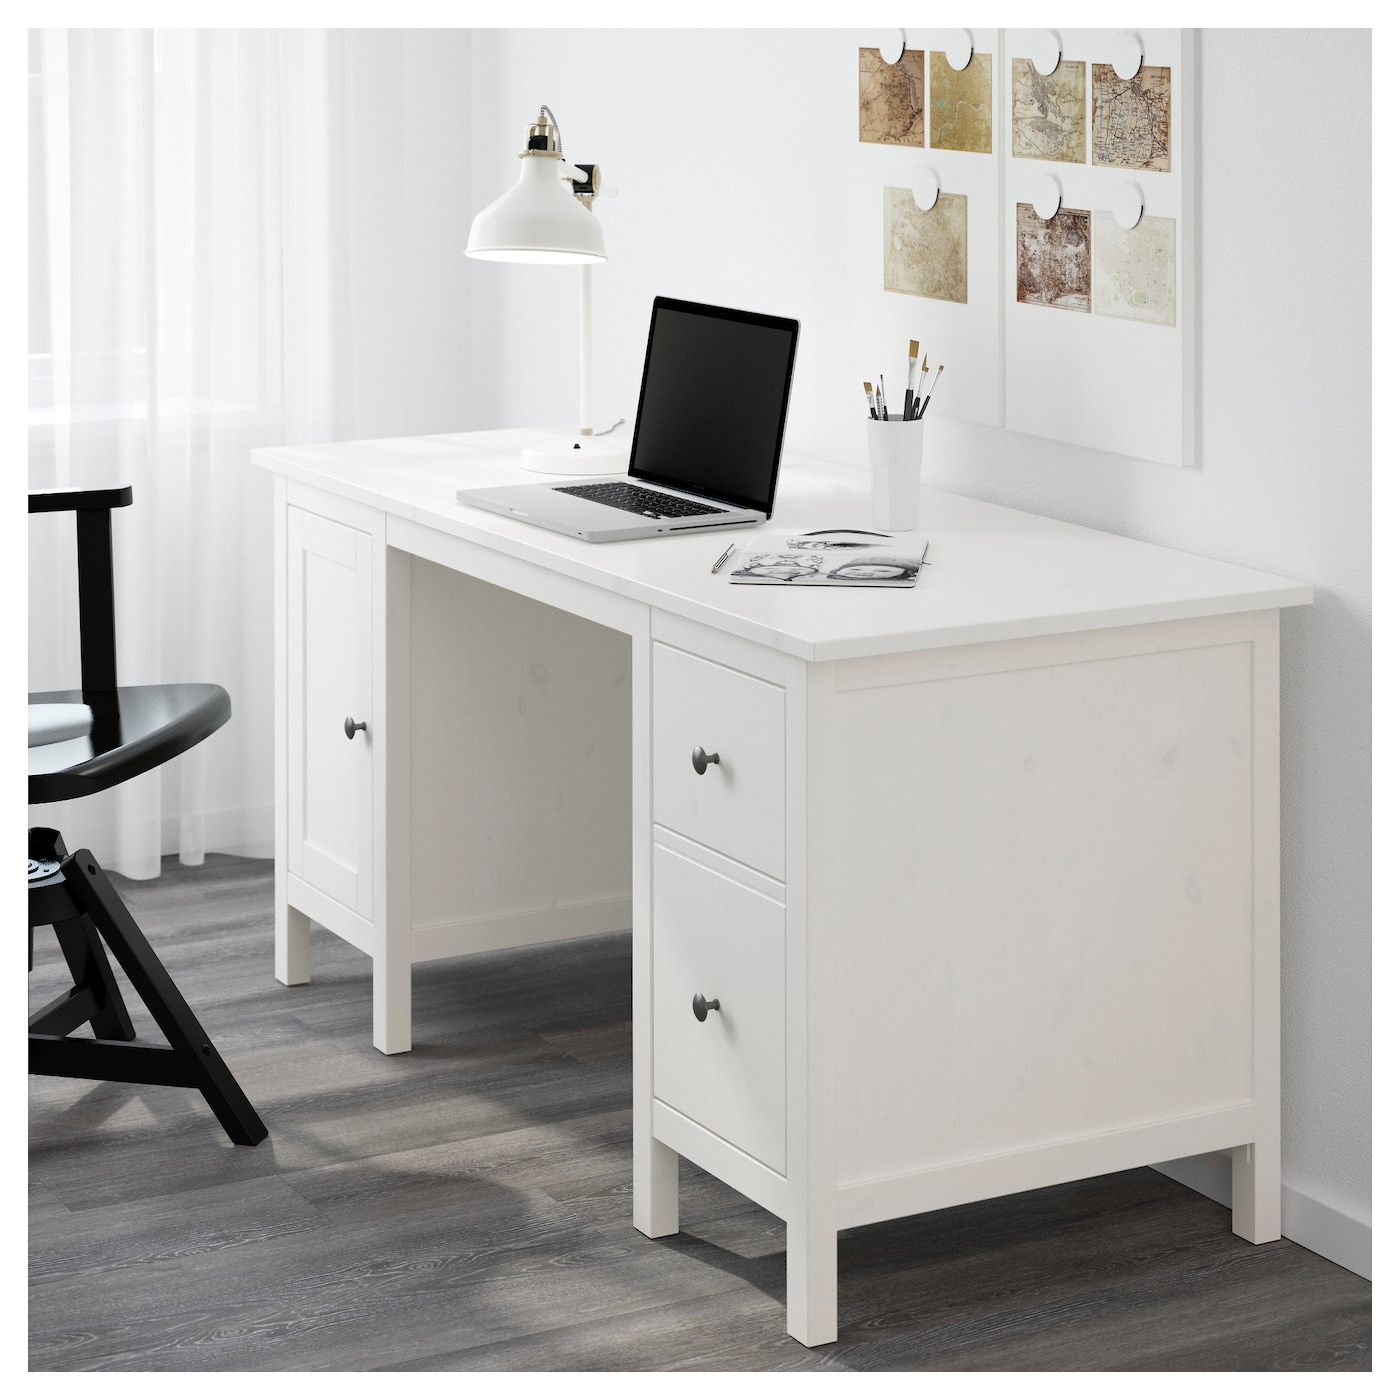 hemnes desk white stain 155 x 65 cm ikea. Black Bedroom Furniture Sets. Home Design Ideas